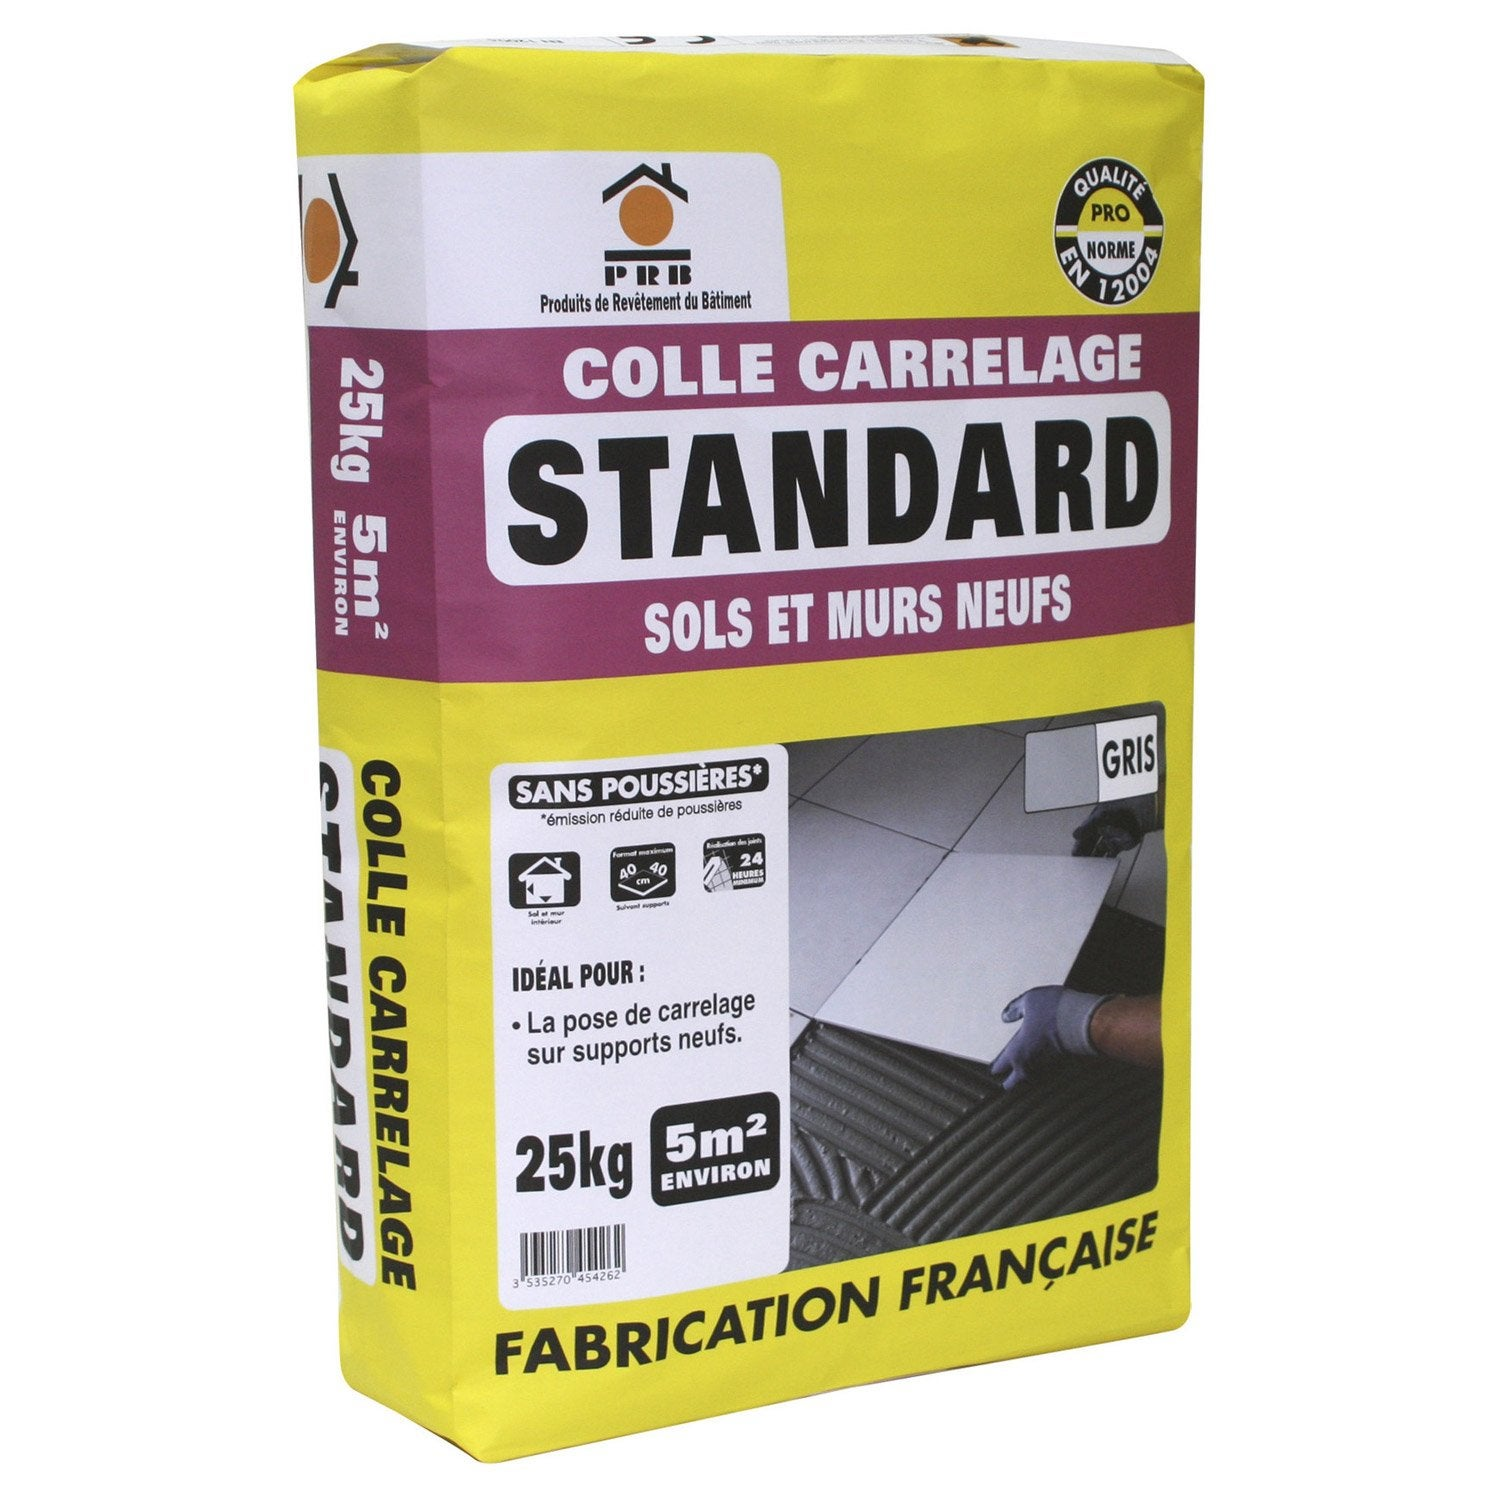 Mortier colle standard pour carrelage mur et sol 25 kg for Colle carrelage exterieur leroy merlin